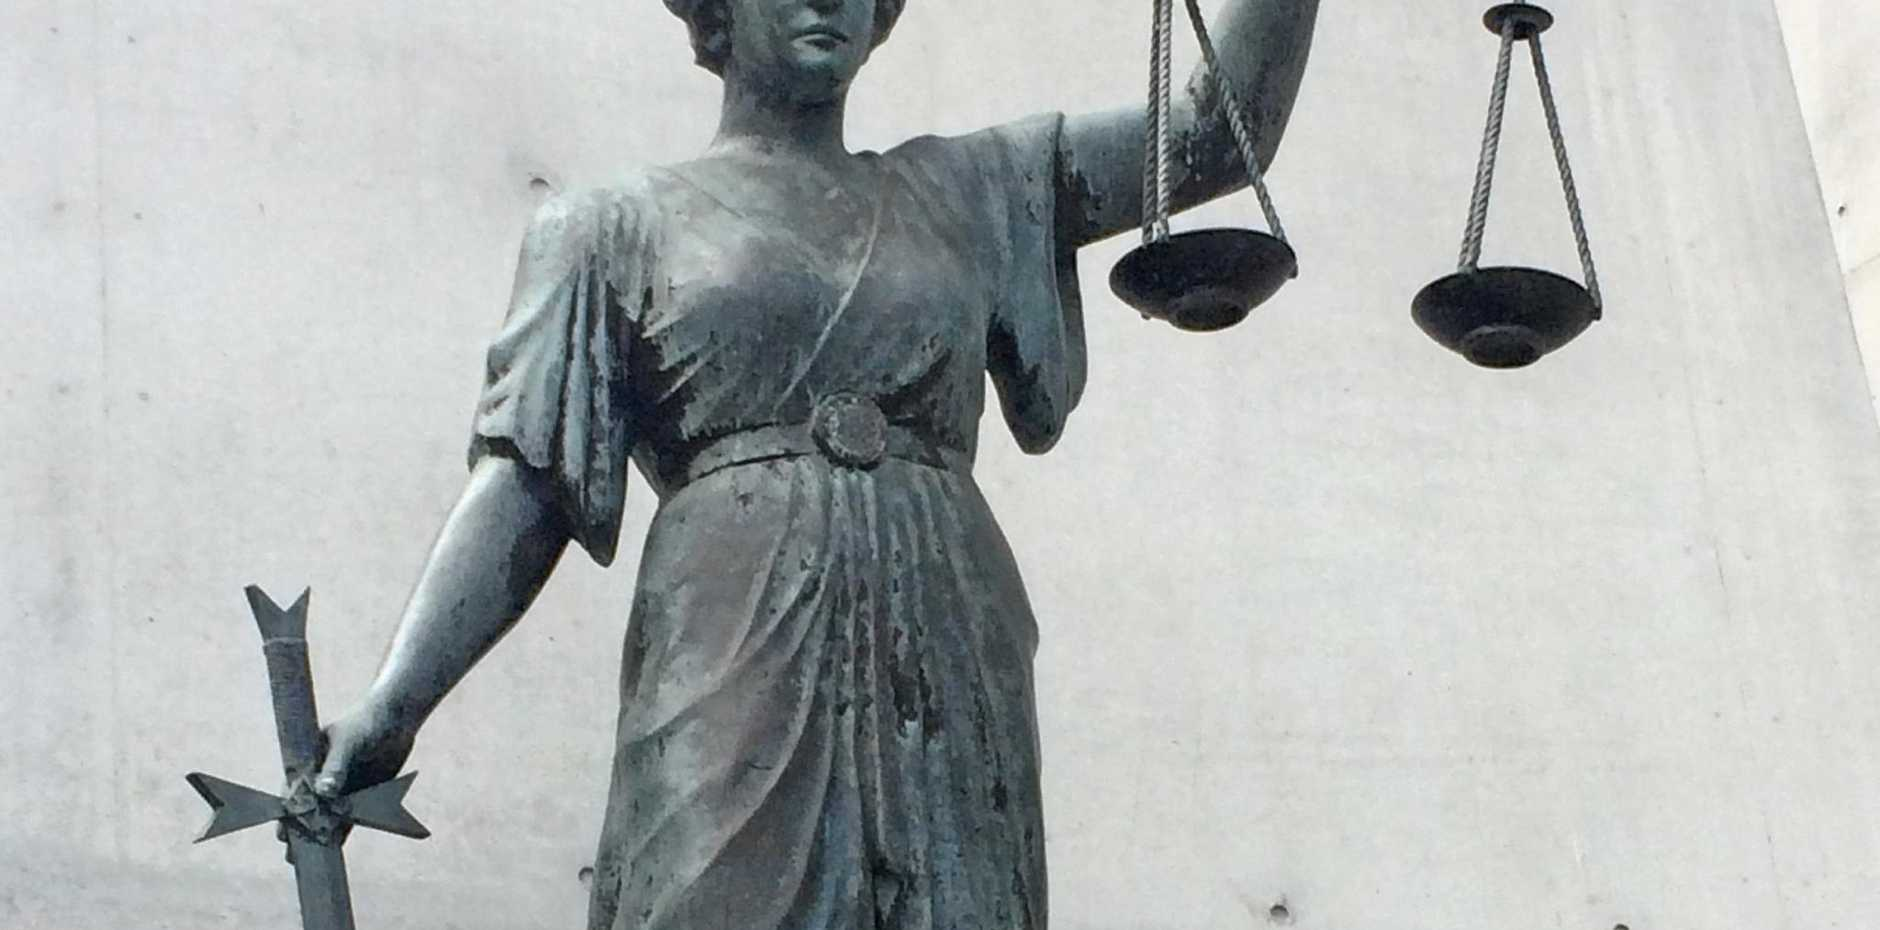 The Greek Goddess of Justice, known as Themis, in the Brisbane courts precinct.